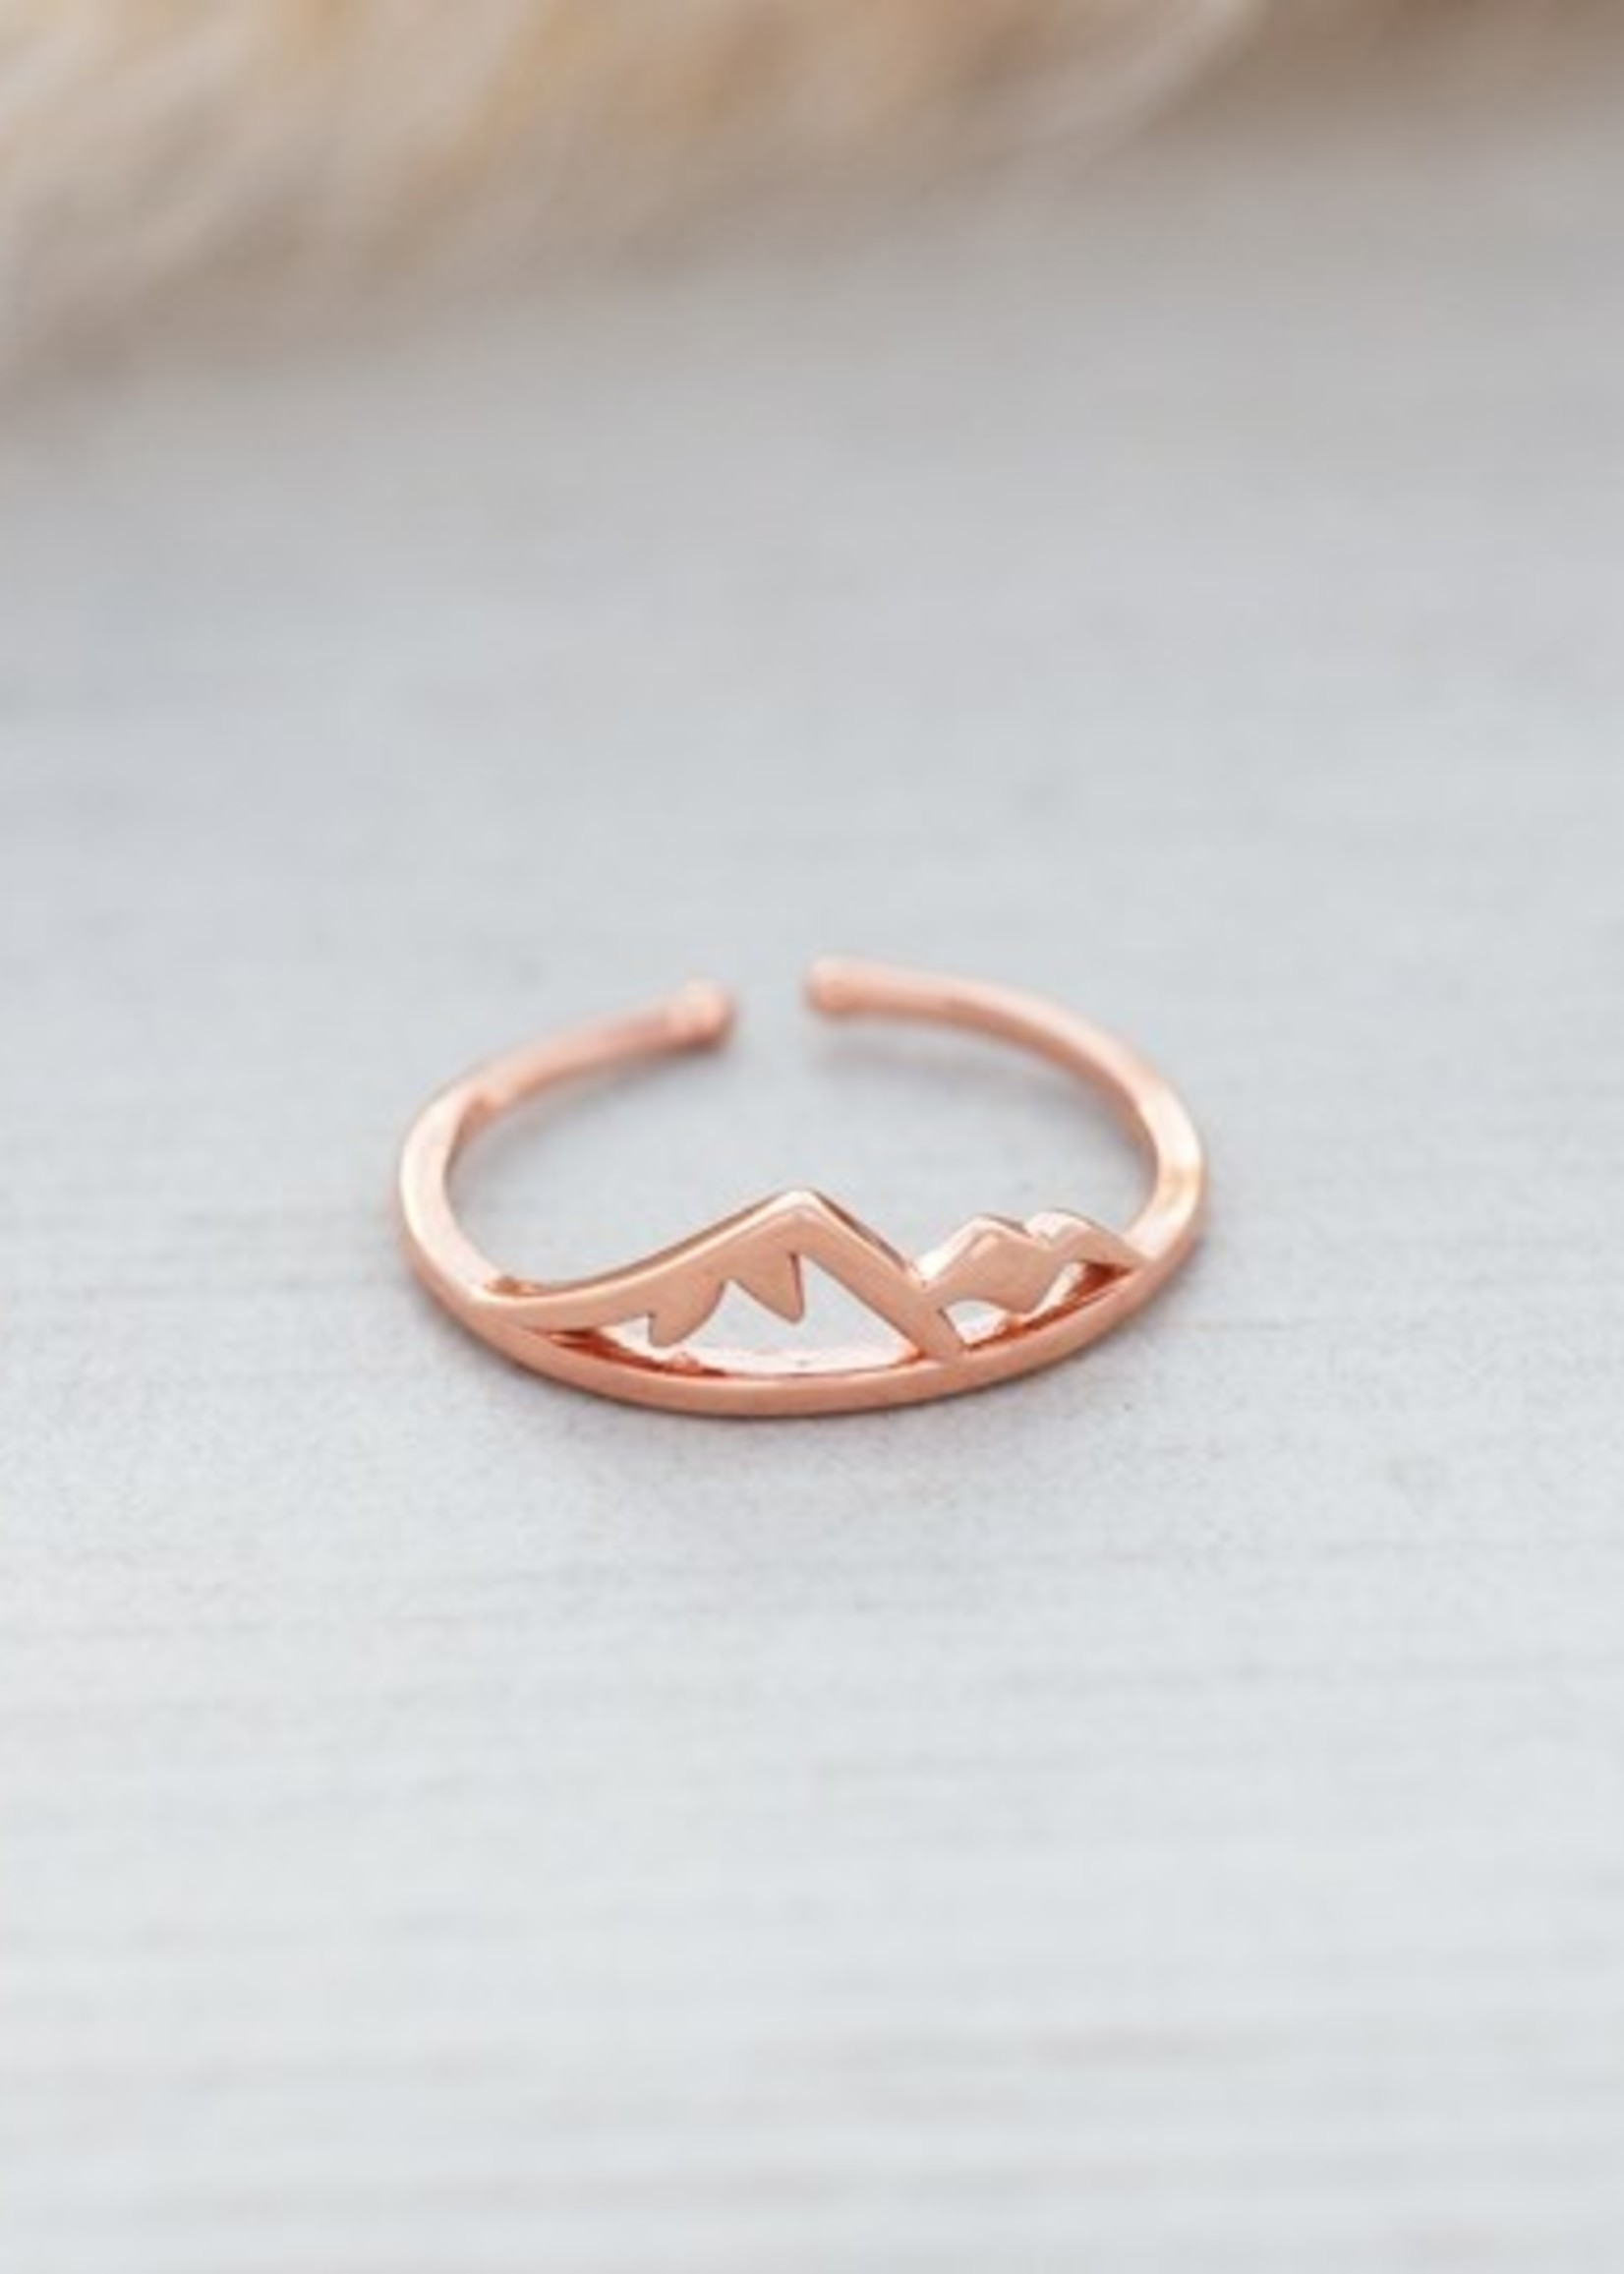 Glee Jewelry Sea to sky ring rose gold